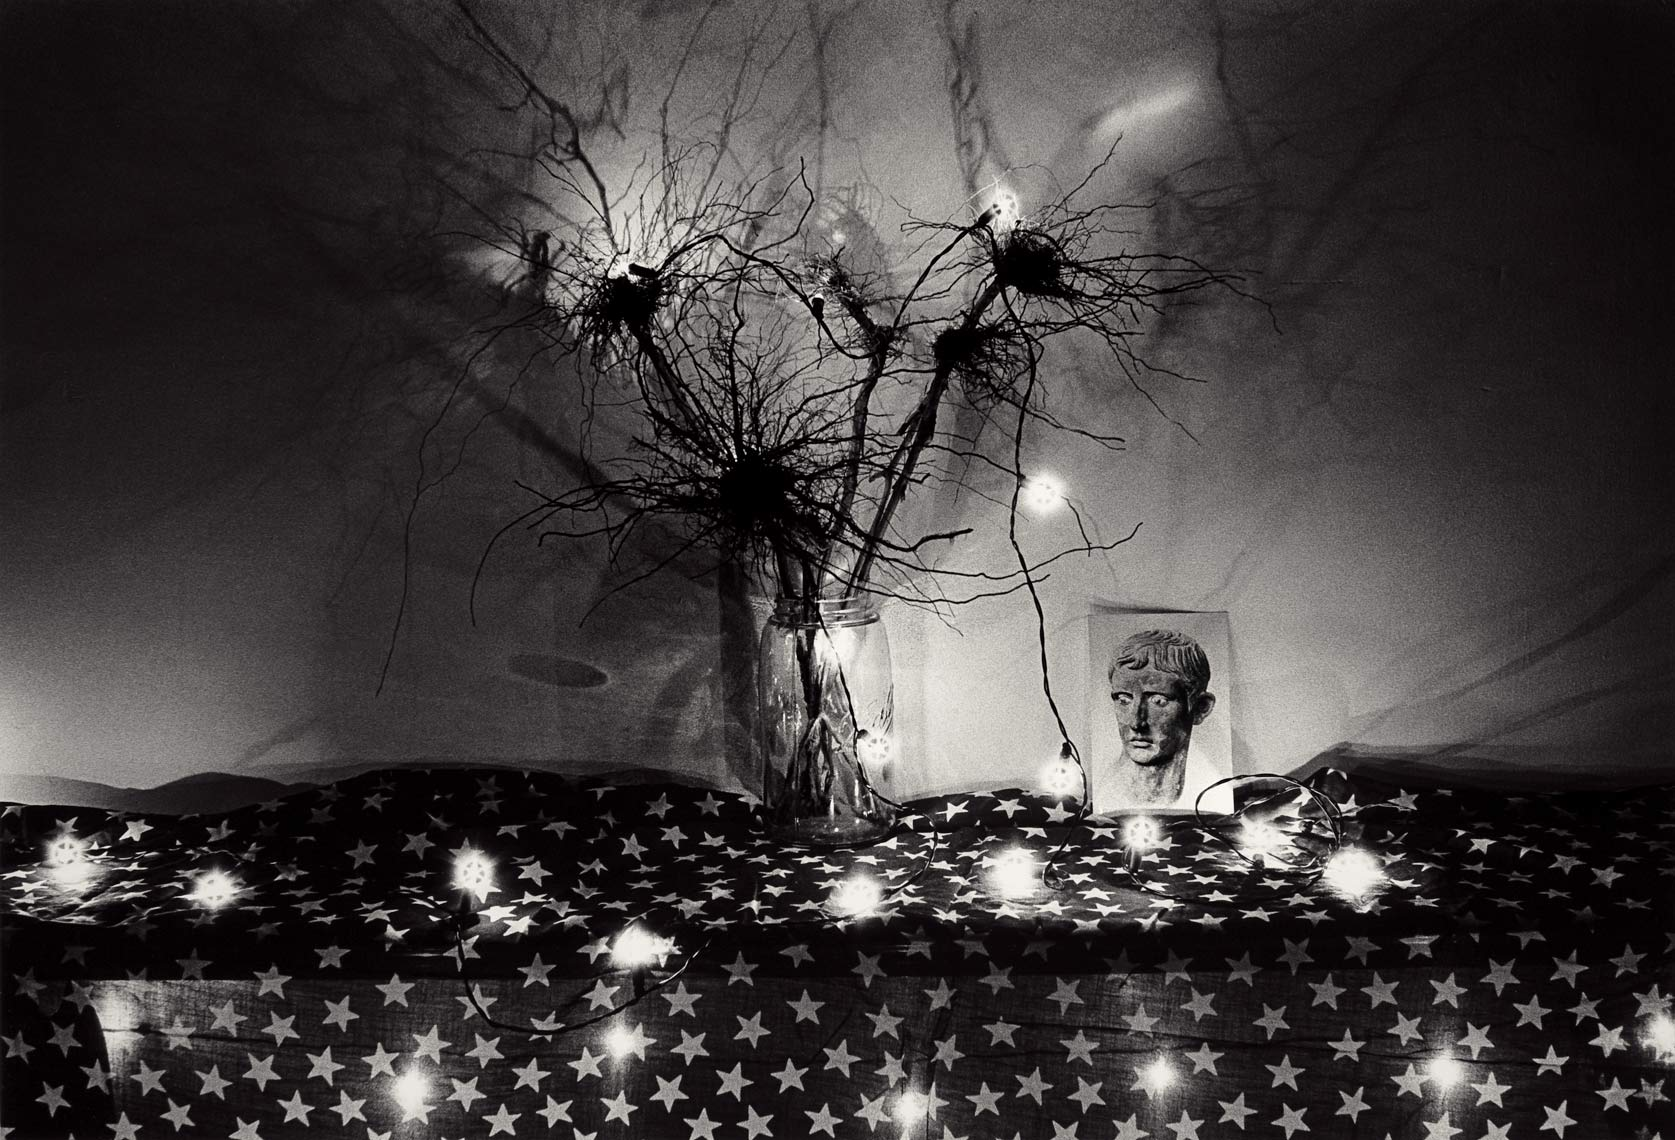 David Lebe; Roots, 1982, black and white photograph